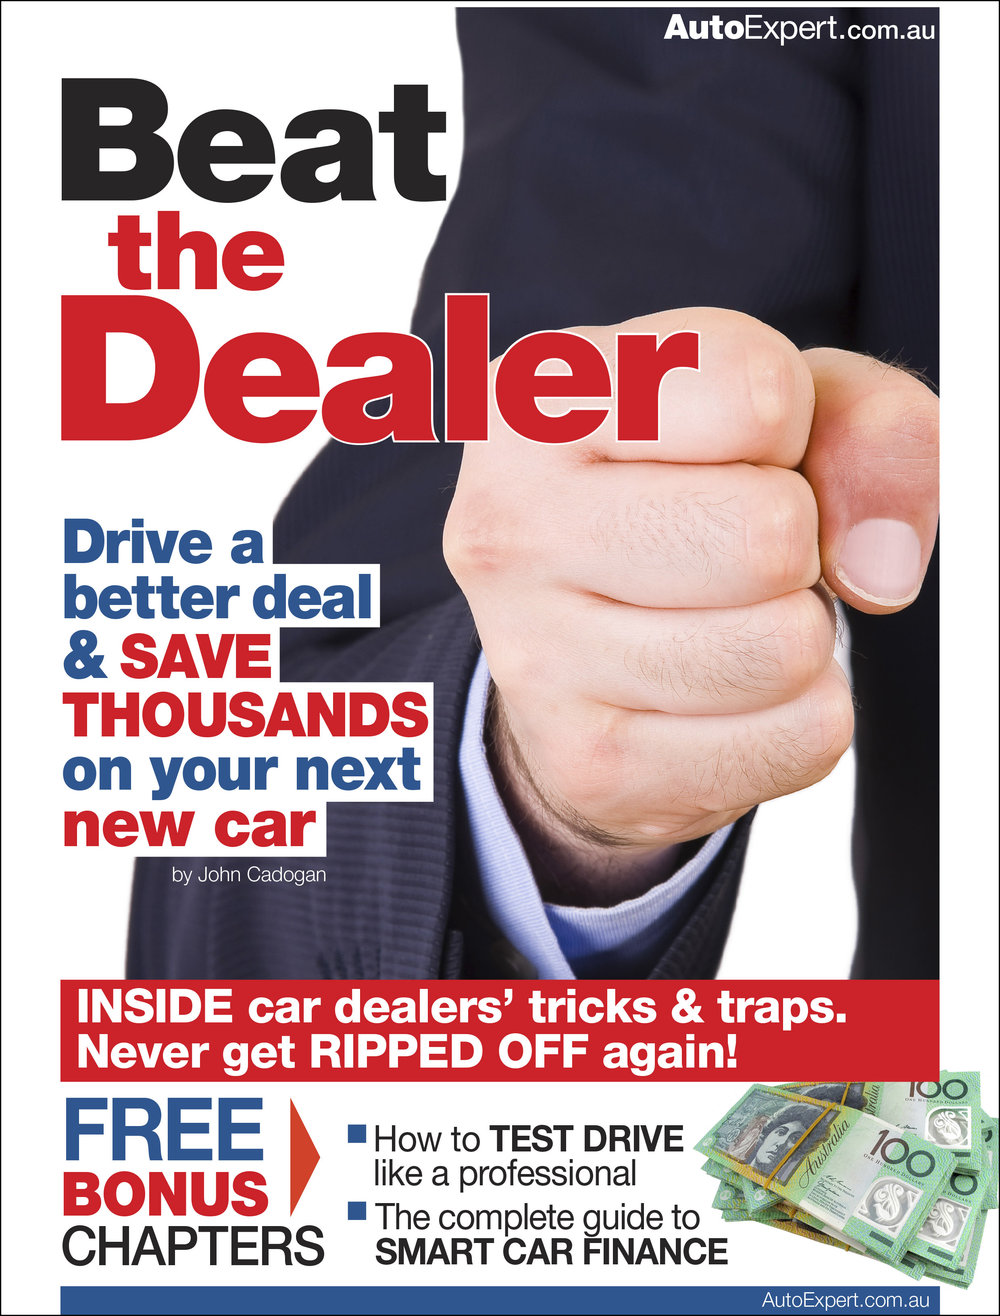 Beat the Dealer contains everything I know about sidestepping the ripoffs and getting a better deal on a new car. Get your copy >>